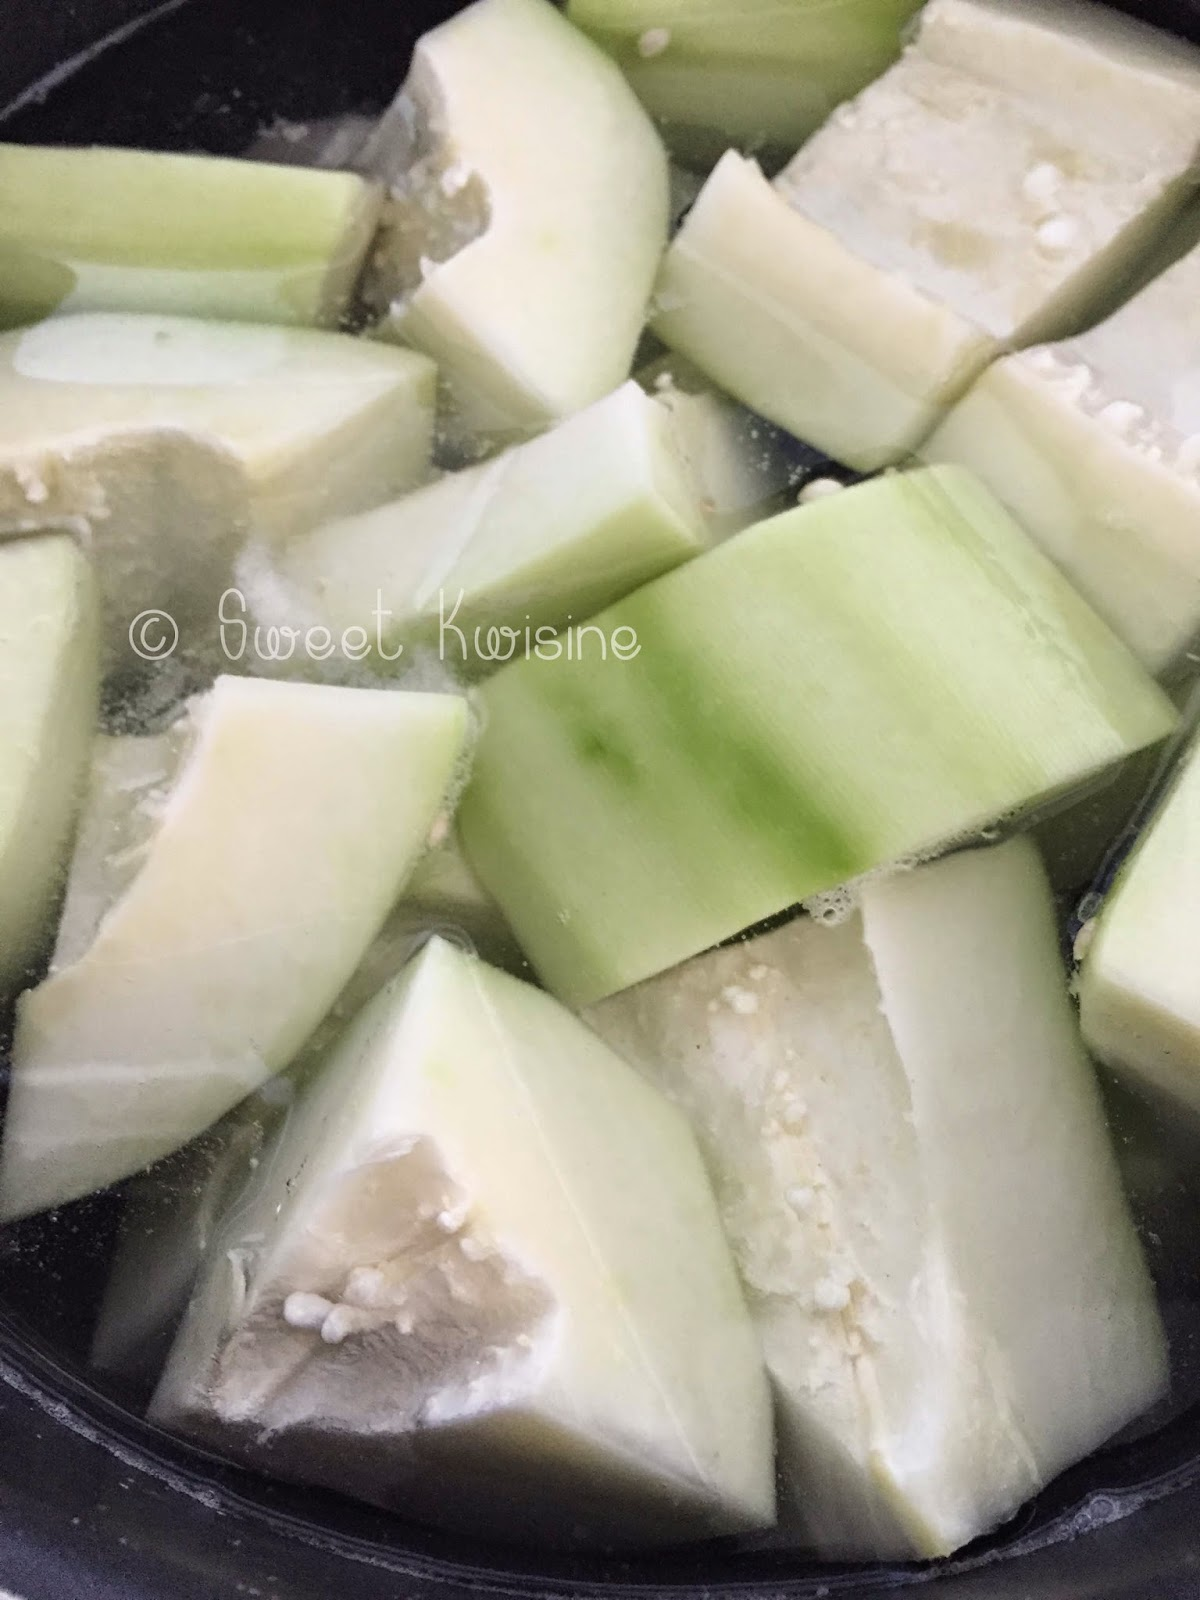 sweet kwisine, papaye, gratin, papaye verte, papaya, helthy food, carribbean, cuisine antillaise, cuisine créole, martinique, cuisine locale, caraibes, fruits tropicaux